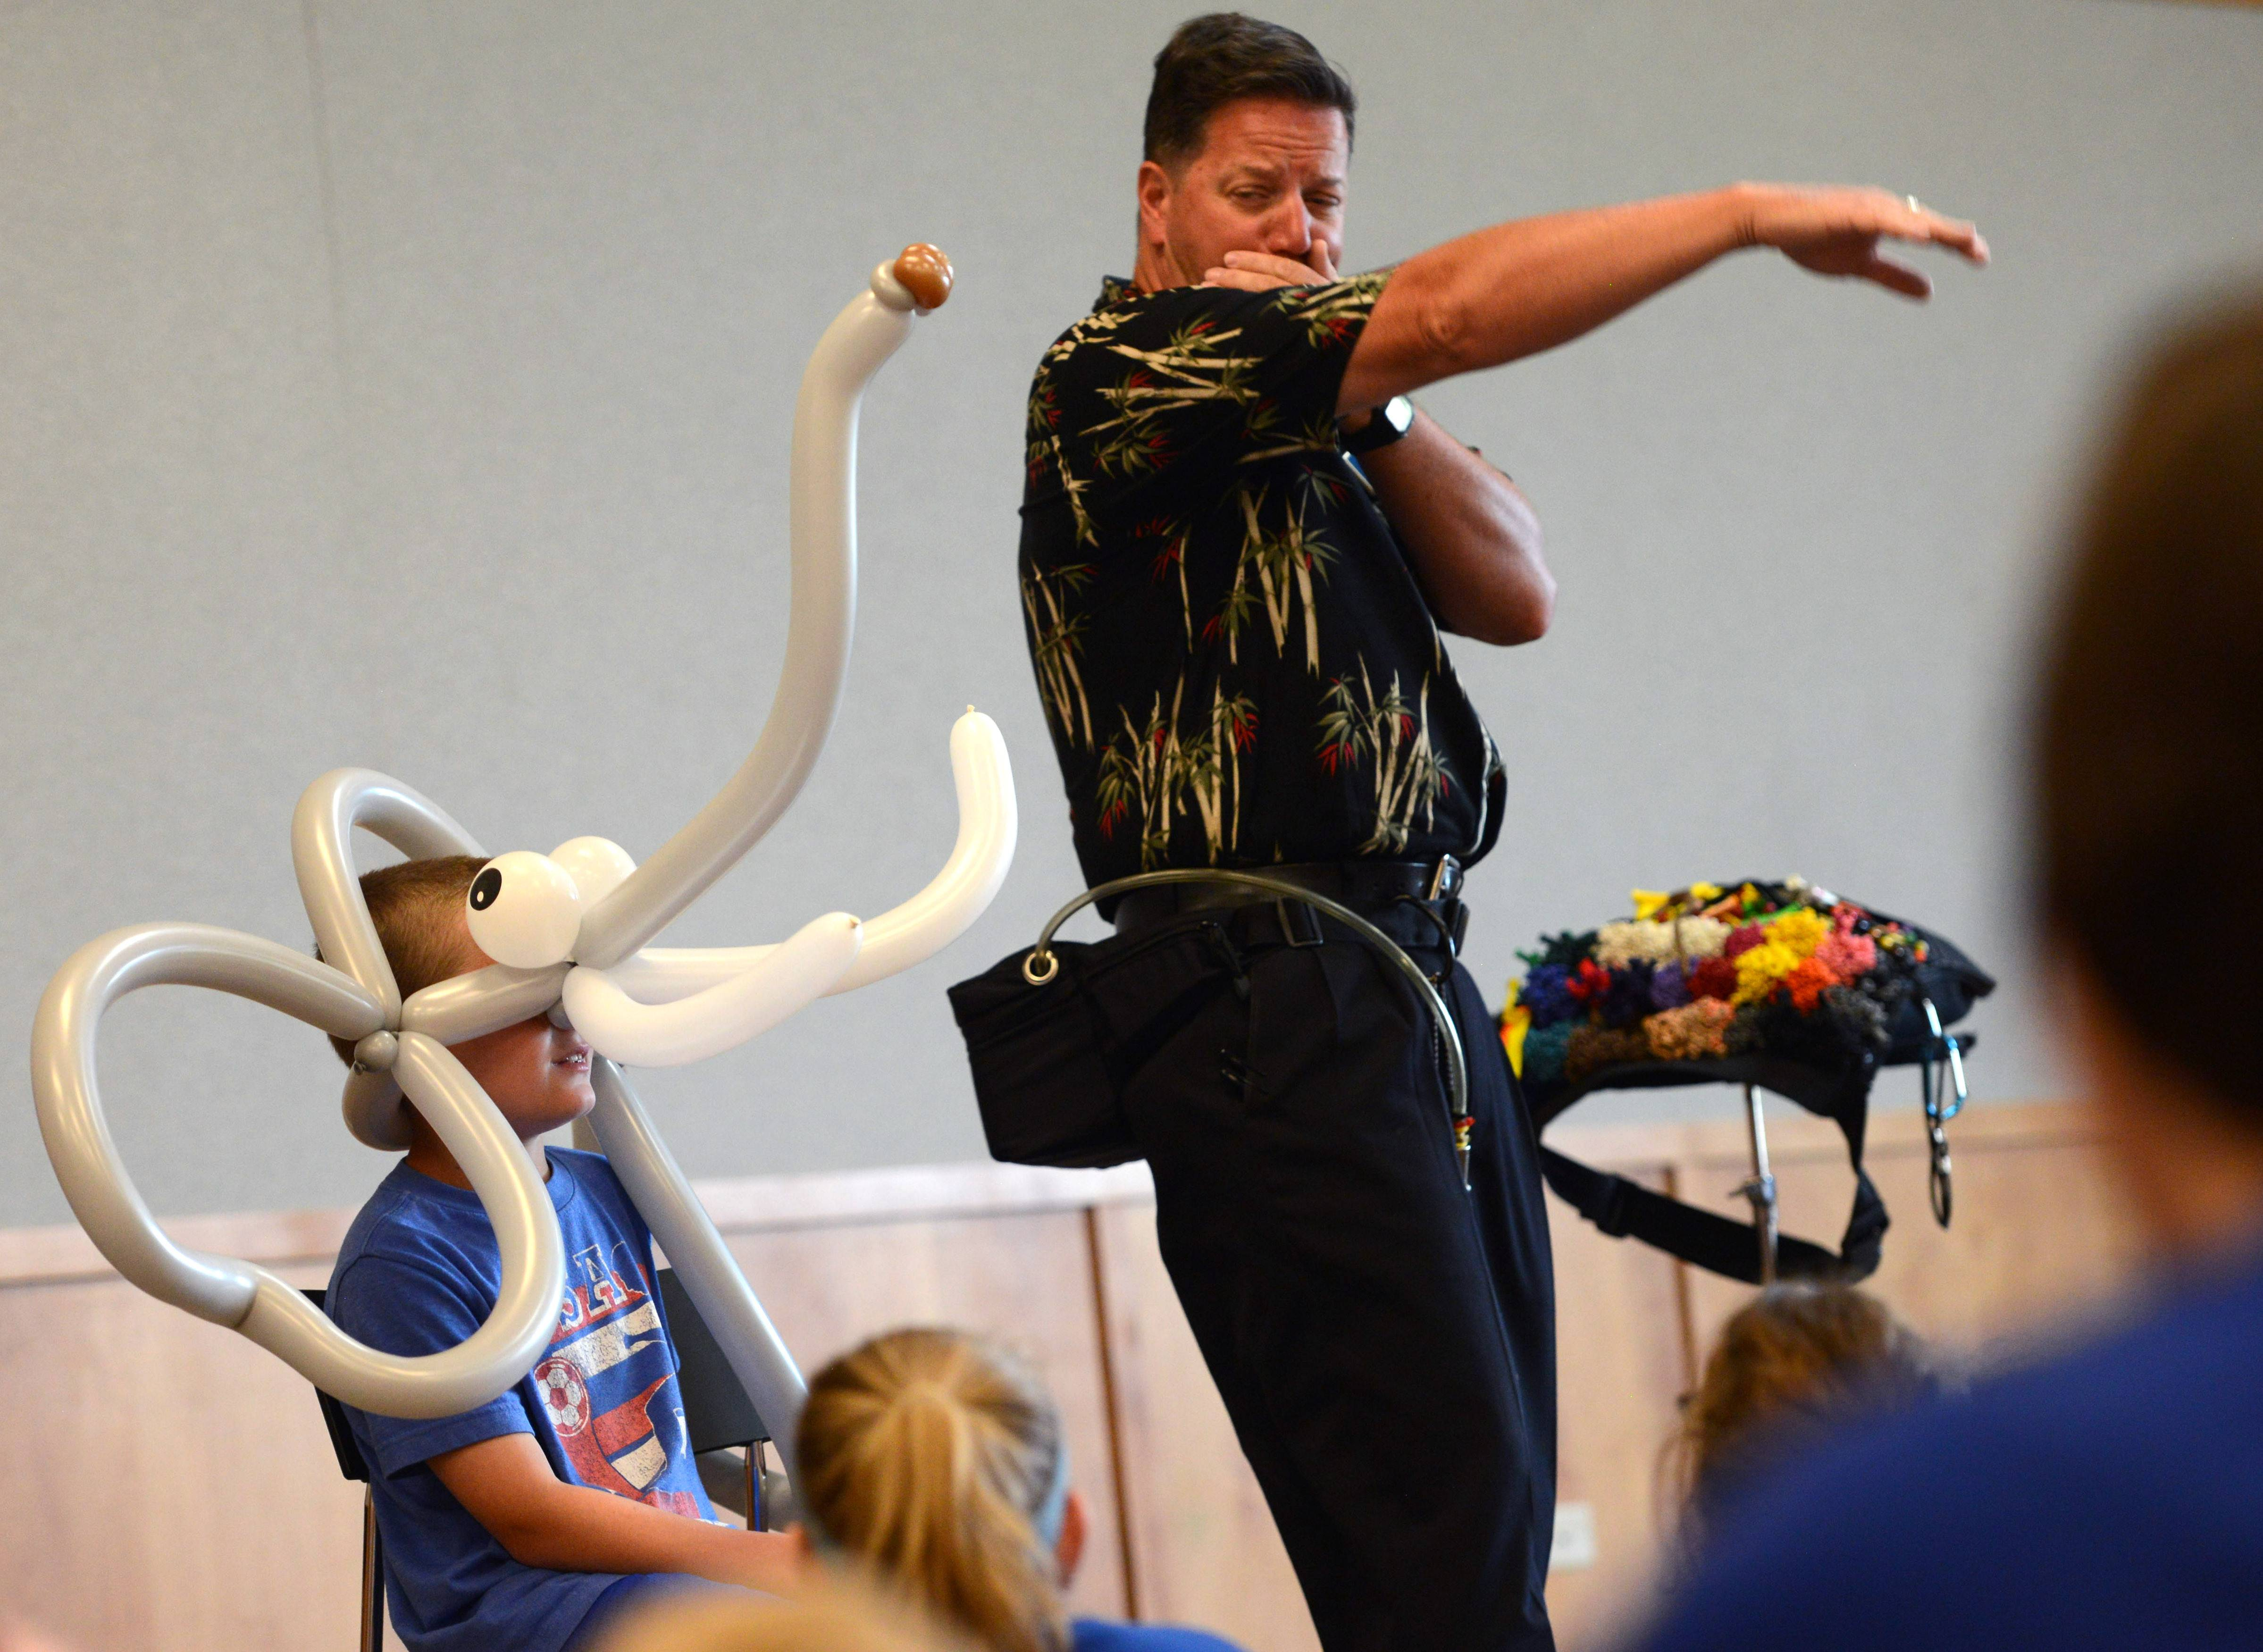 Ben Michels, 8, of Lake Zurich, and balloon artist Dale Obrochta imitate elephants Monday during Obrochta's improvisational balloon show at the Ela Area Public Library in Lake Zurich.